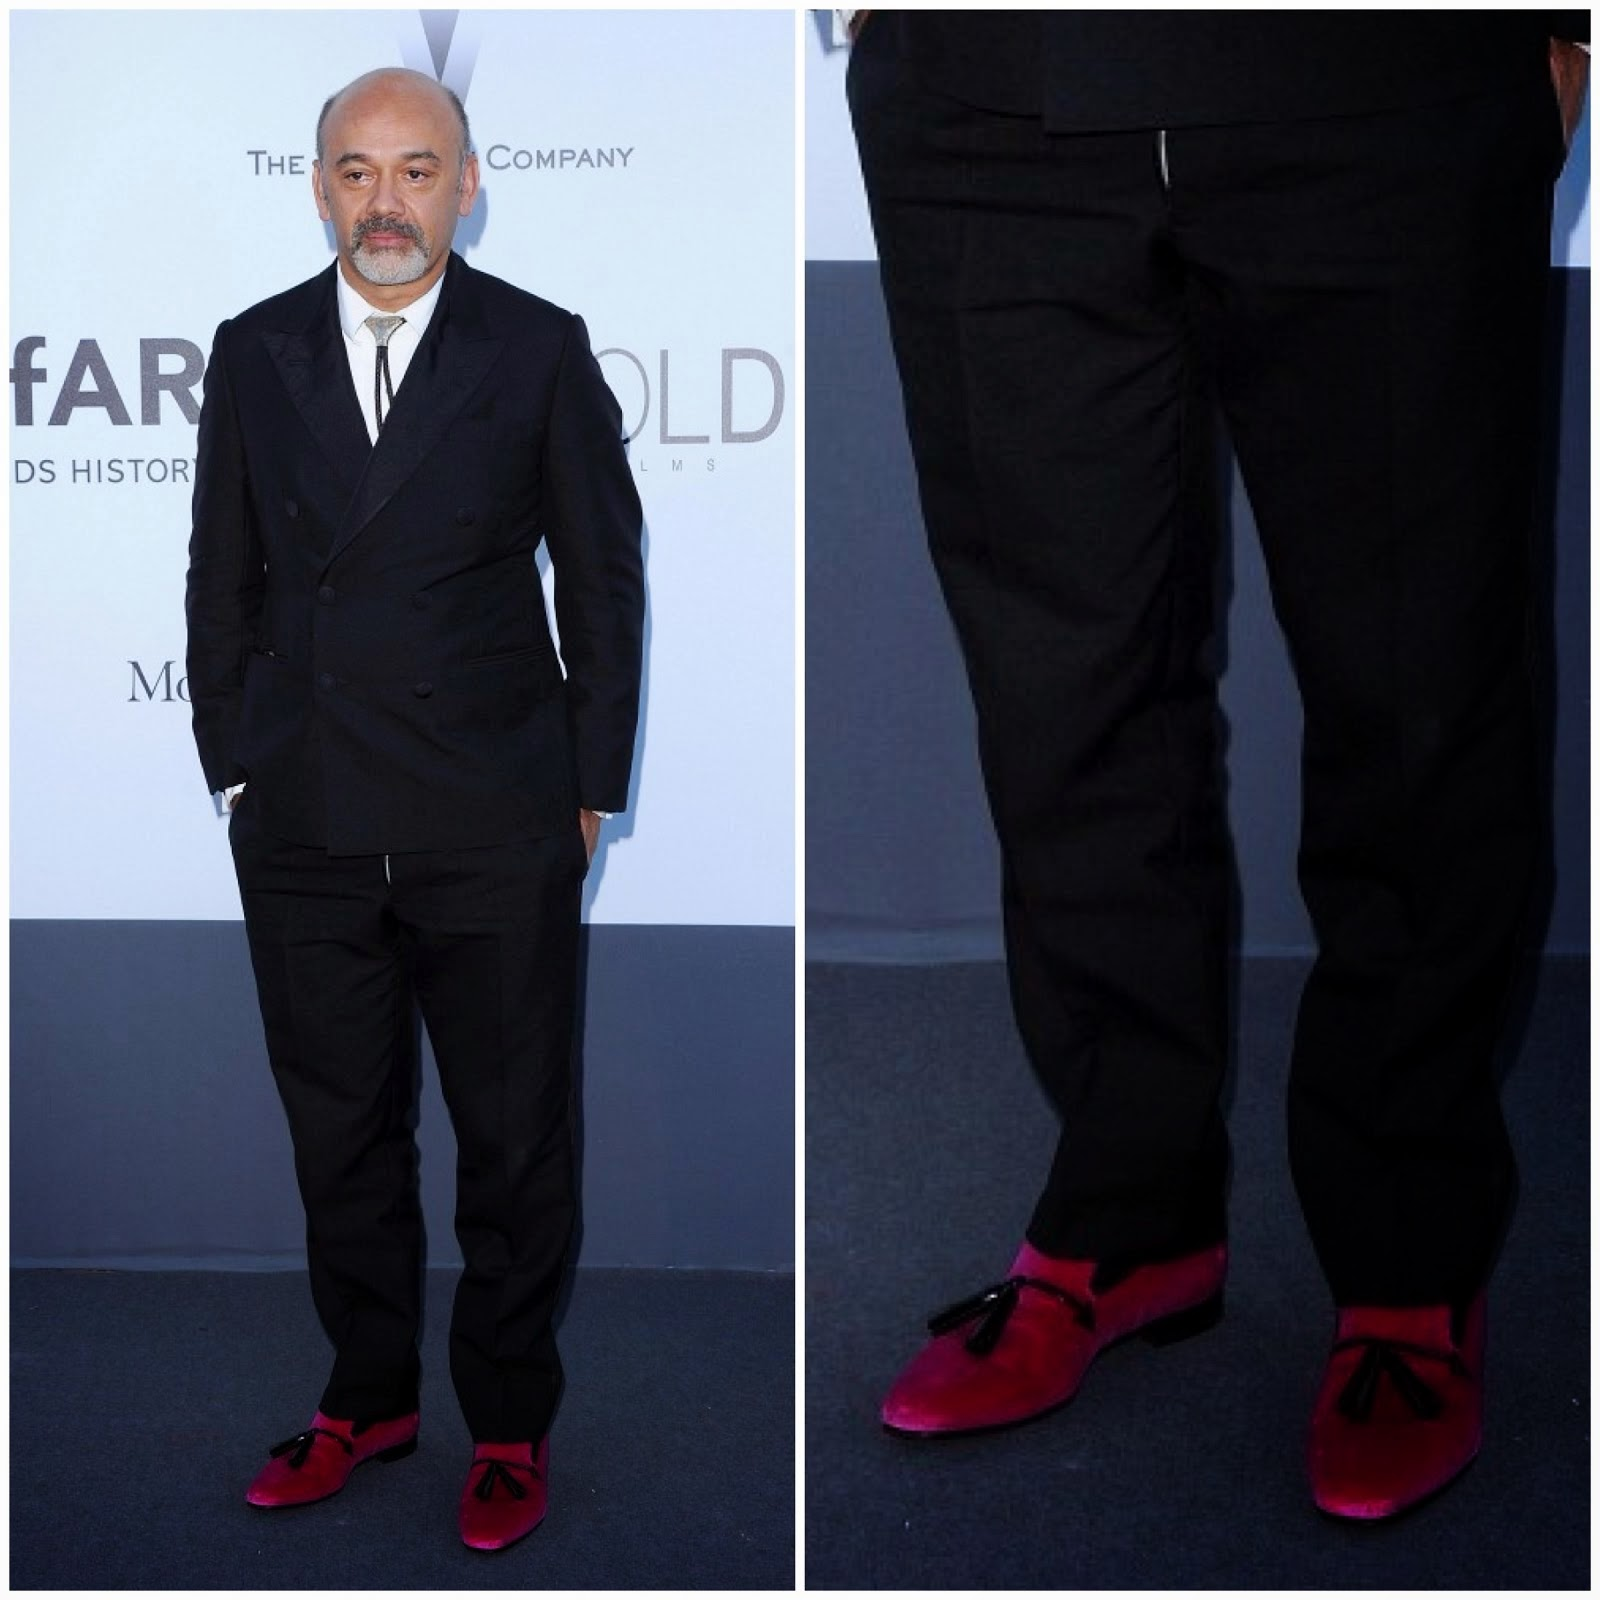 00O00 Menswear Blog: Christian Louboutin's 'Daddy' men's flat - amfAR's 20th Cinema Against AIDS Gala